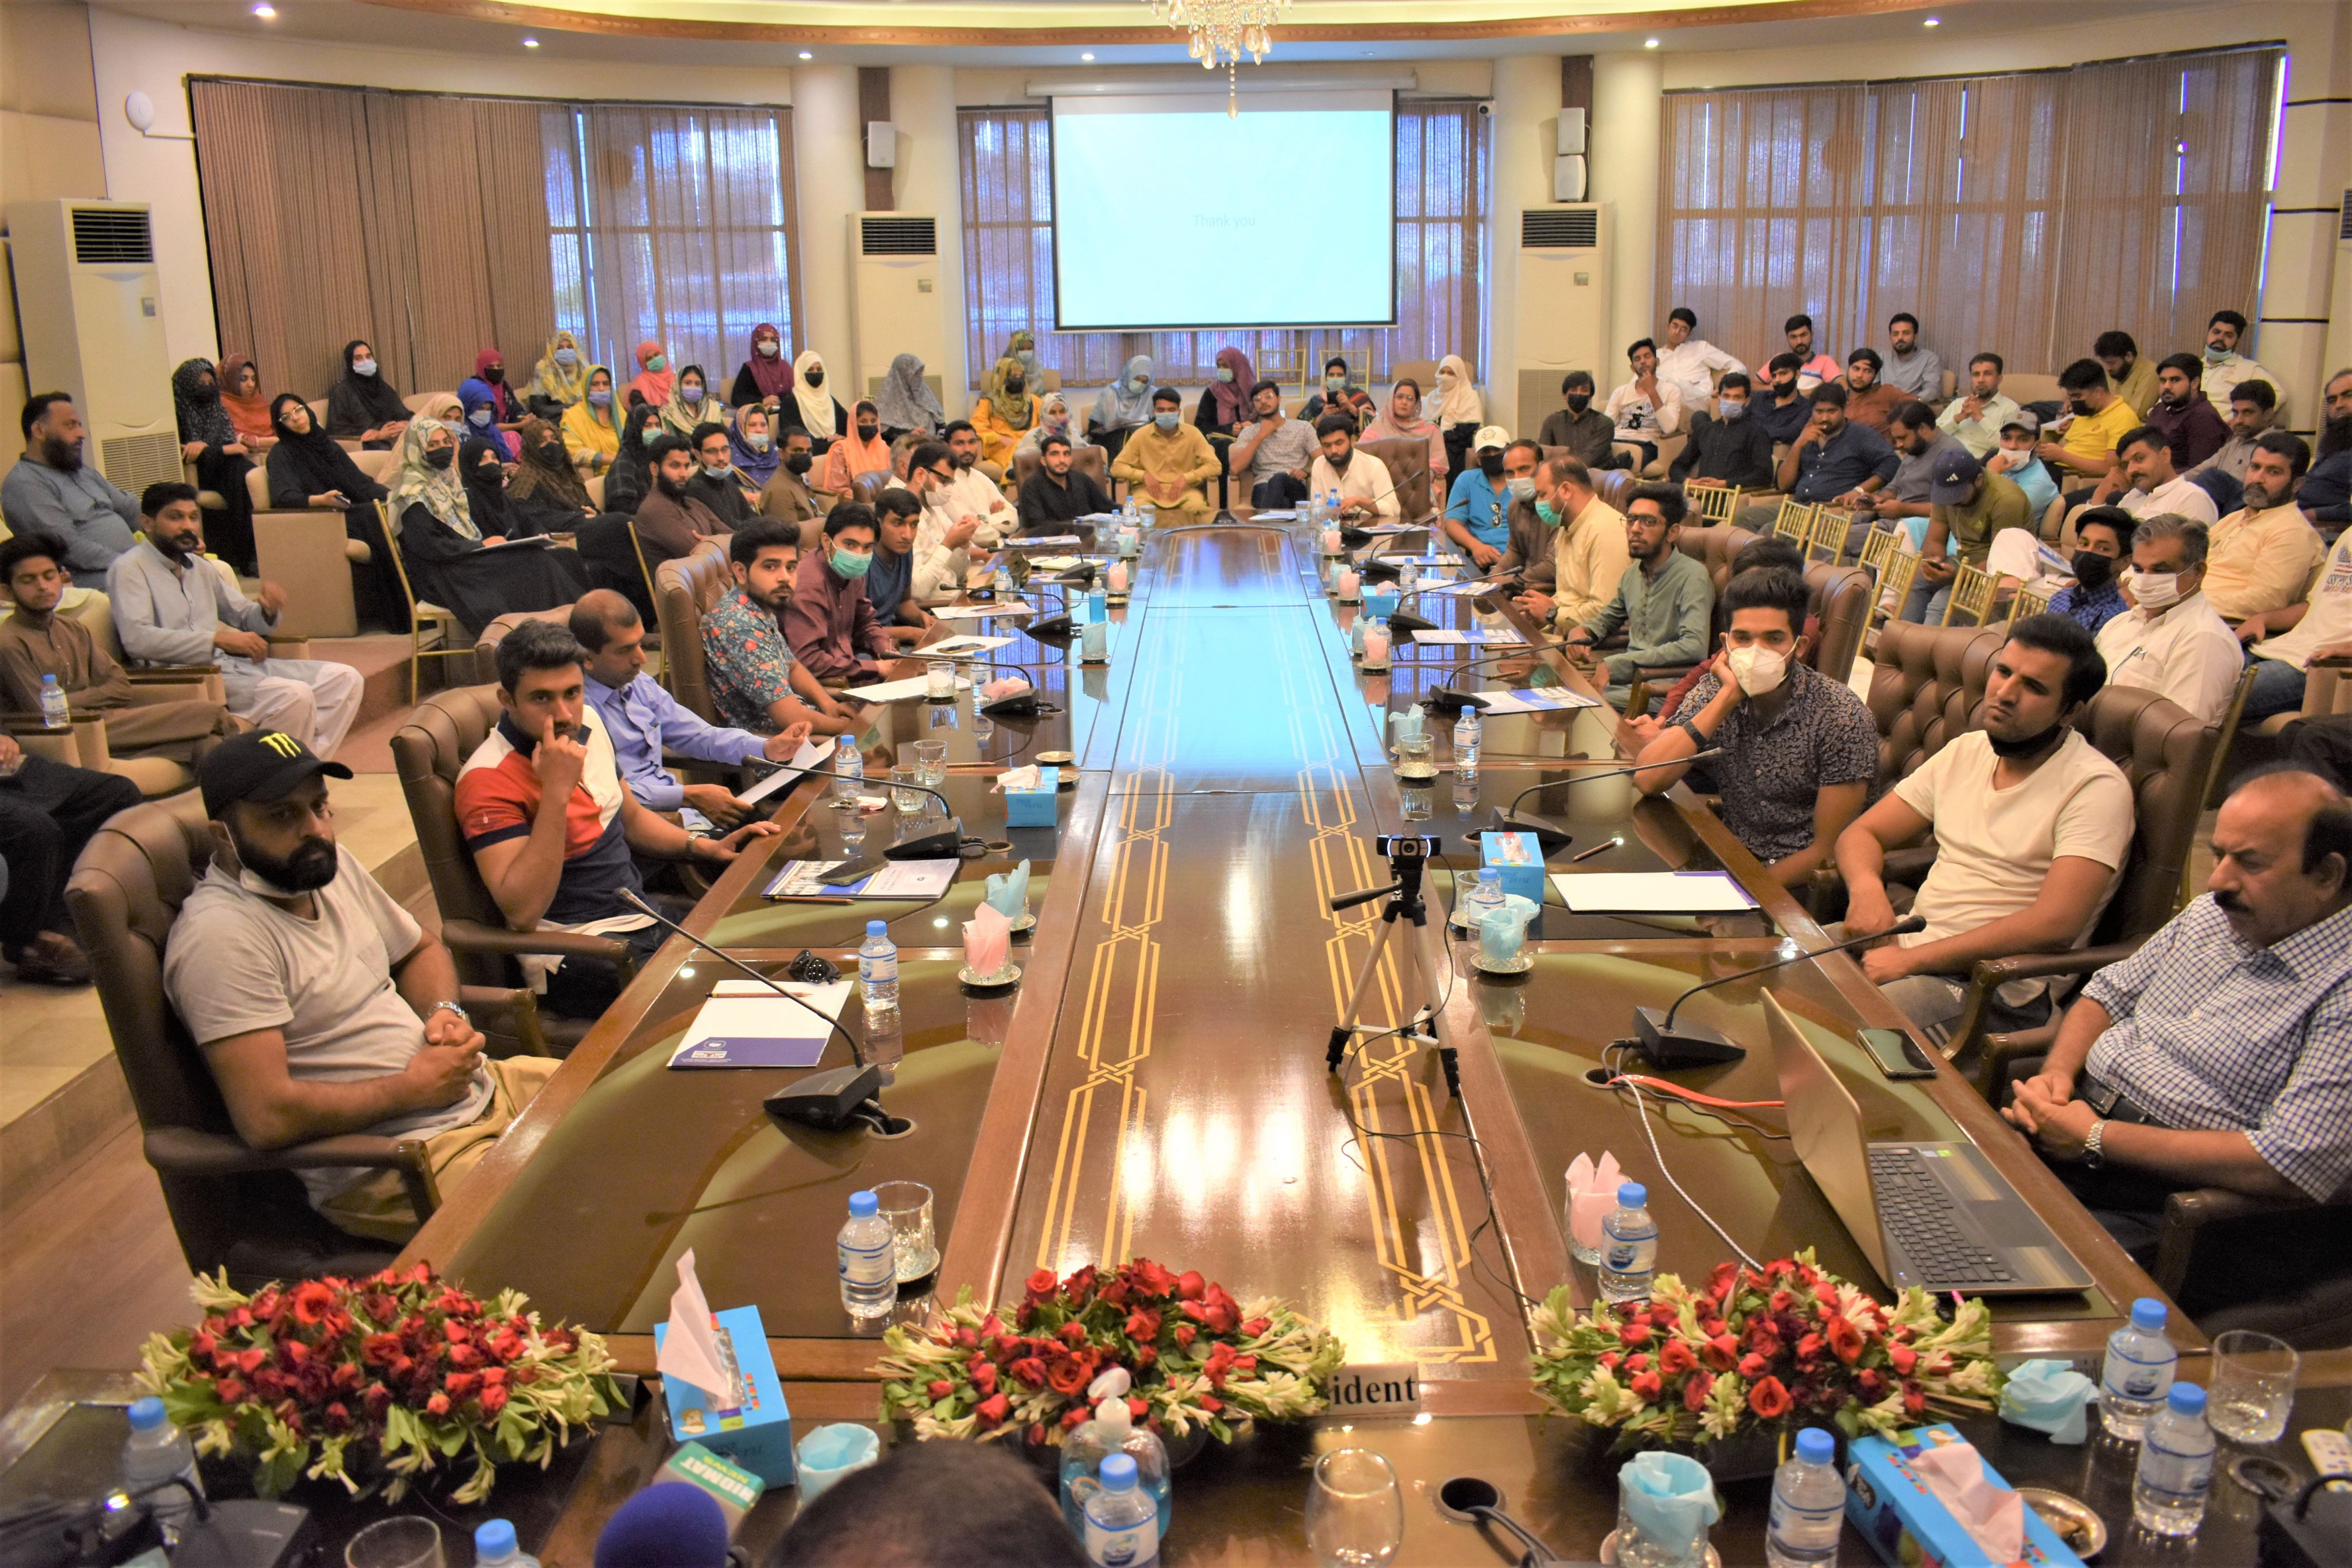 """On July 16, 2021, Mr. Khuram Aslam, Senior Vice President, Sialkot Chamber of Commerce & Industry presided over a Training session on """"COVID and Virtual Exhibitions"""".   Mian Muhammad Khalil, Chairman, Departmental Committee on Event Management & Liaison also addressed the participants.   Mr. Fizan Akbar, Chairman, SME/Training & Young Entrepreneurs briefed the audience regarding Virtual Exhibitions, SEO and E-Commerce. A Q/A session was also held at the end of Training Session."""